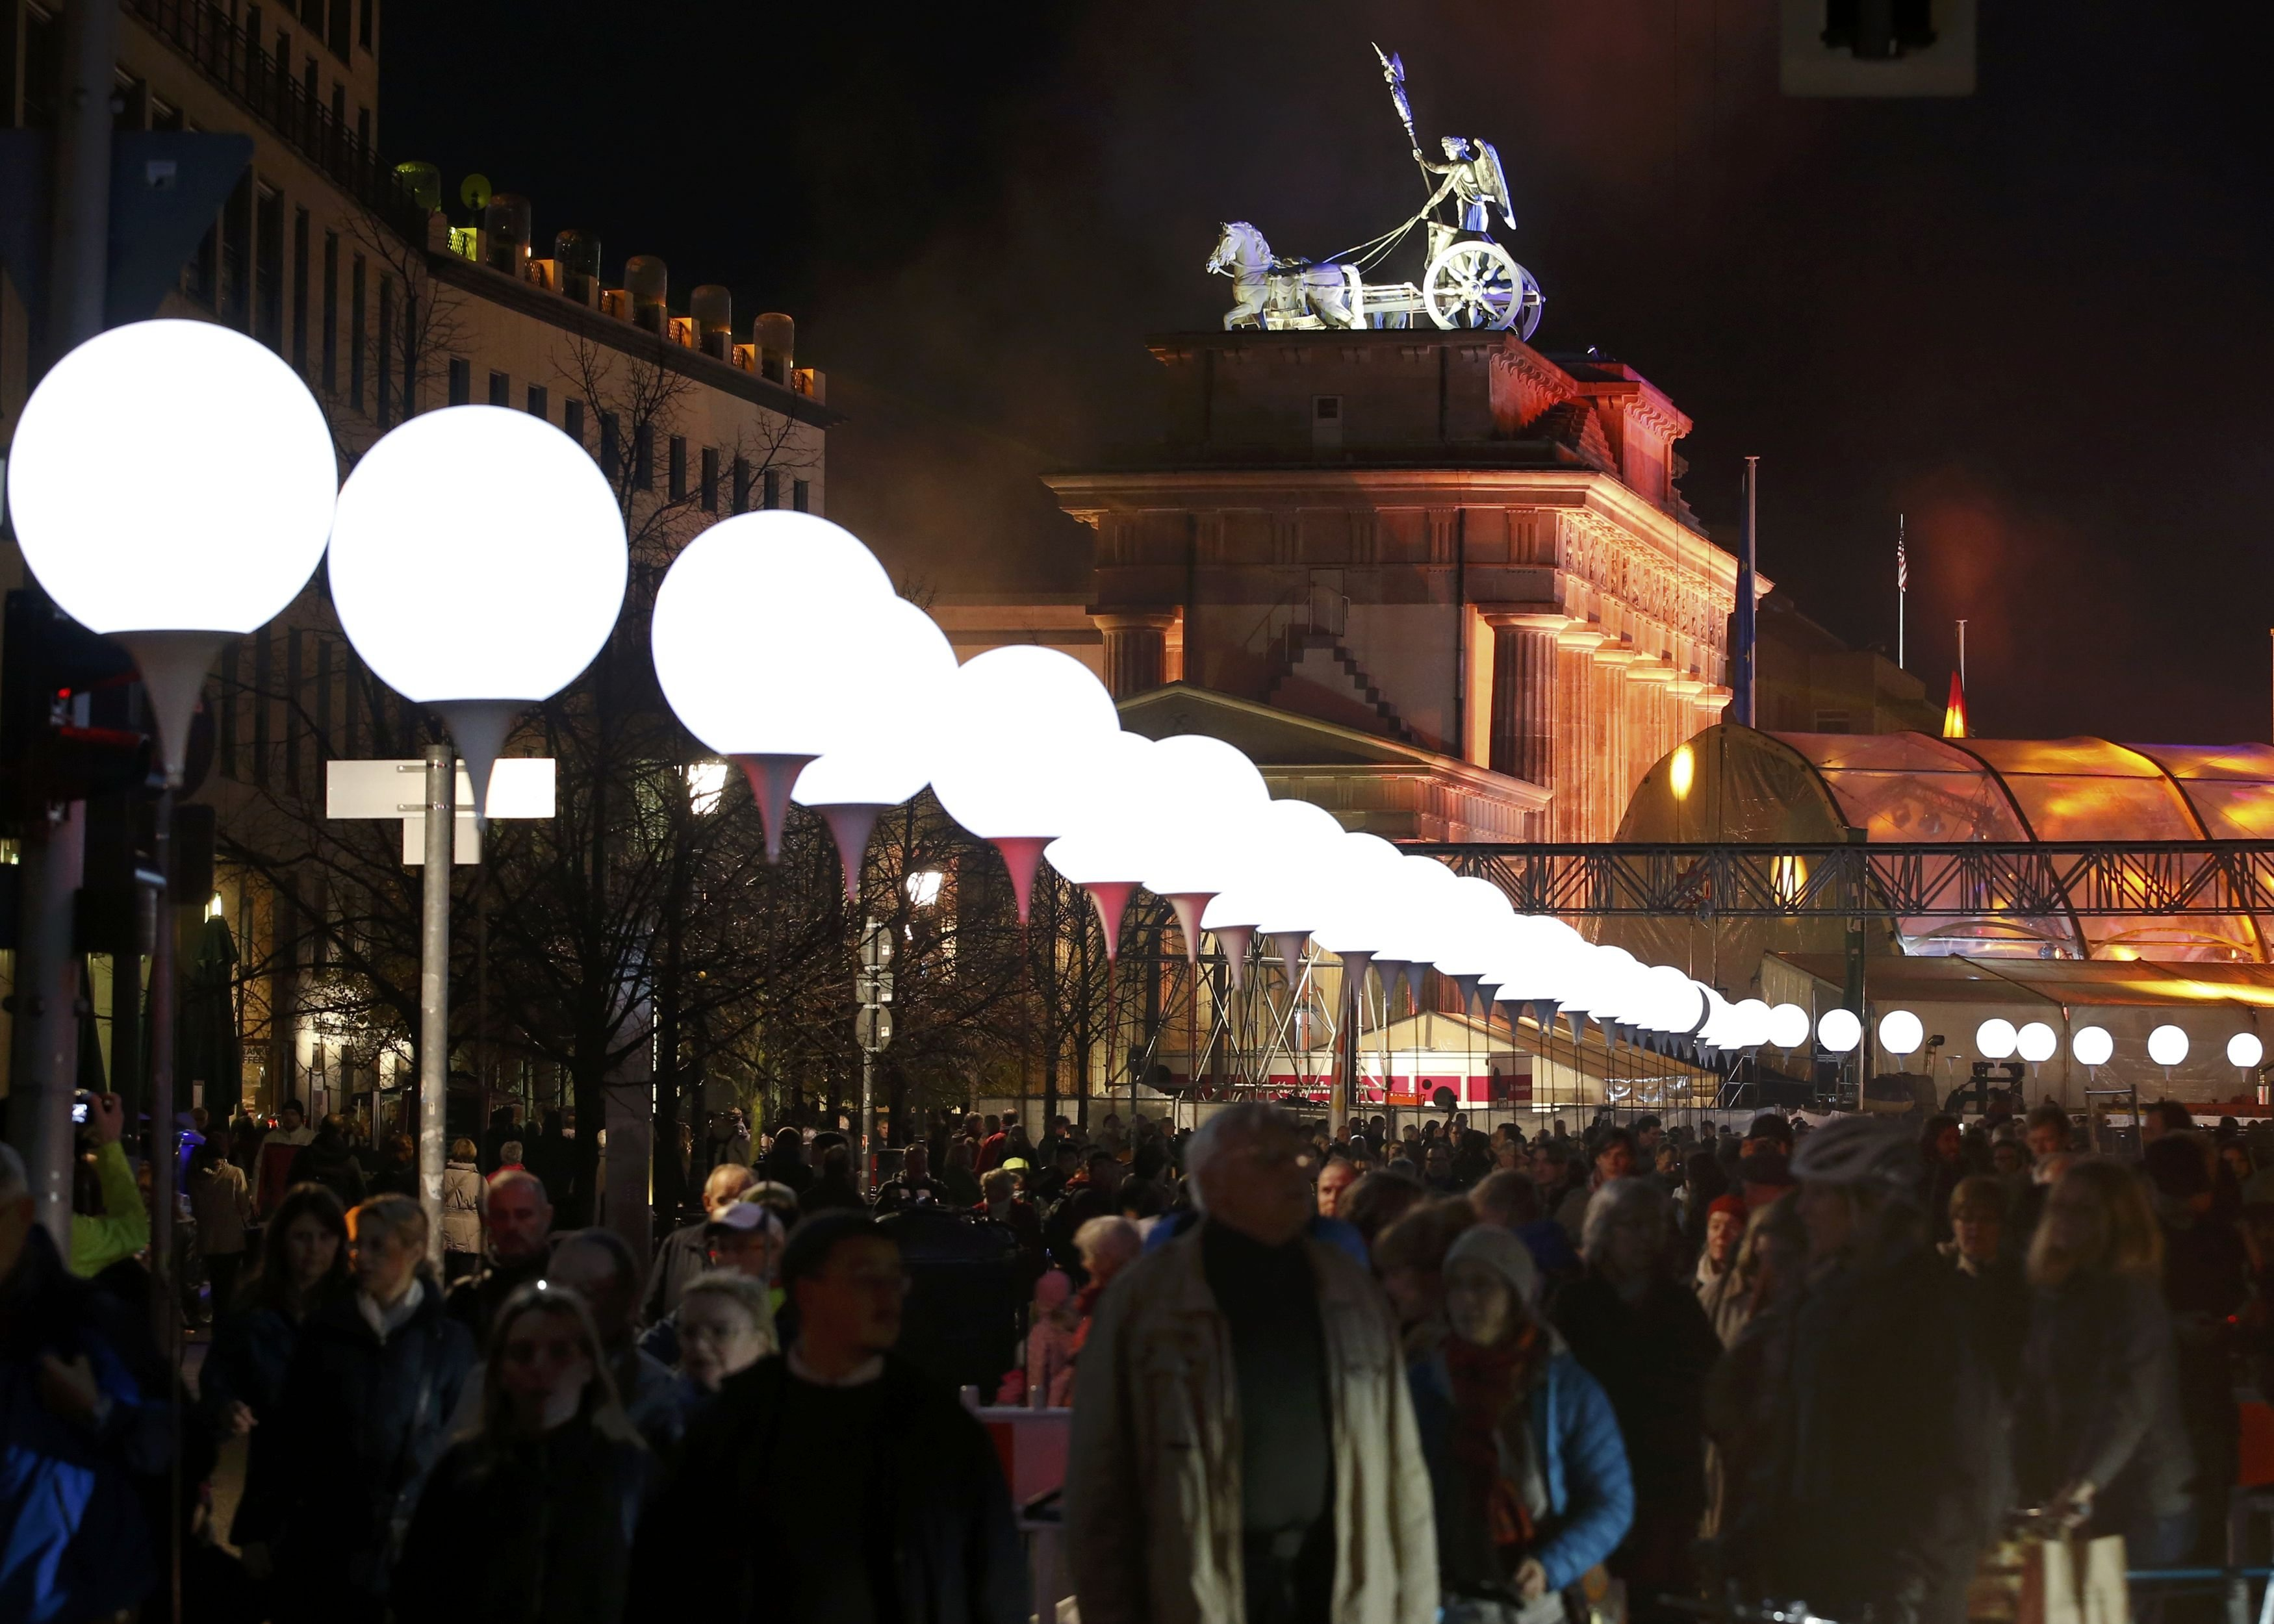 Lit balloons are placed along the former Berlin Wall location near the Brandenburg Gate in Berlin on Nov. 8, 2014.